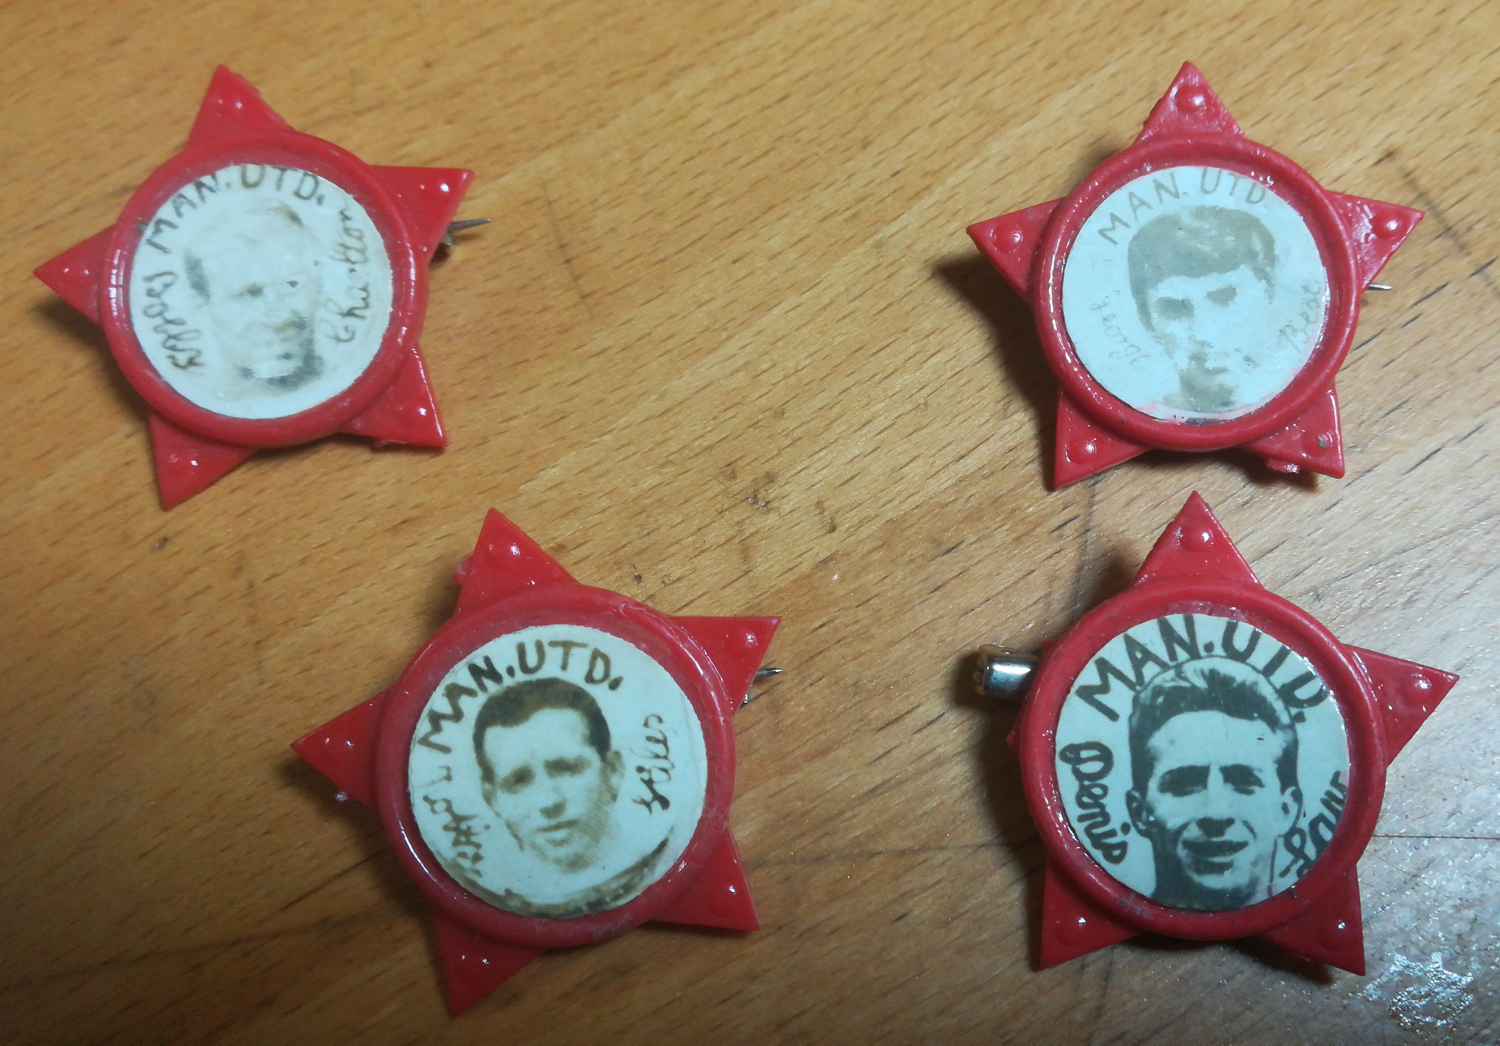 Manchester United star badge values